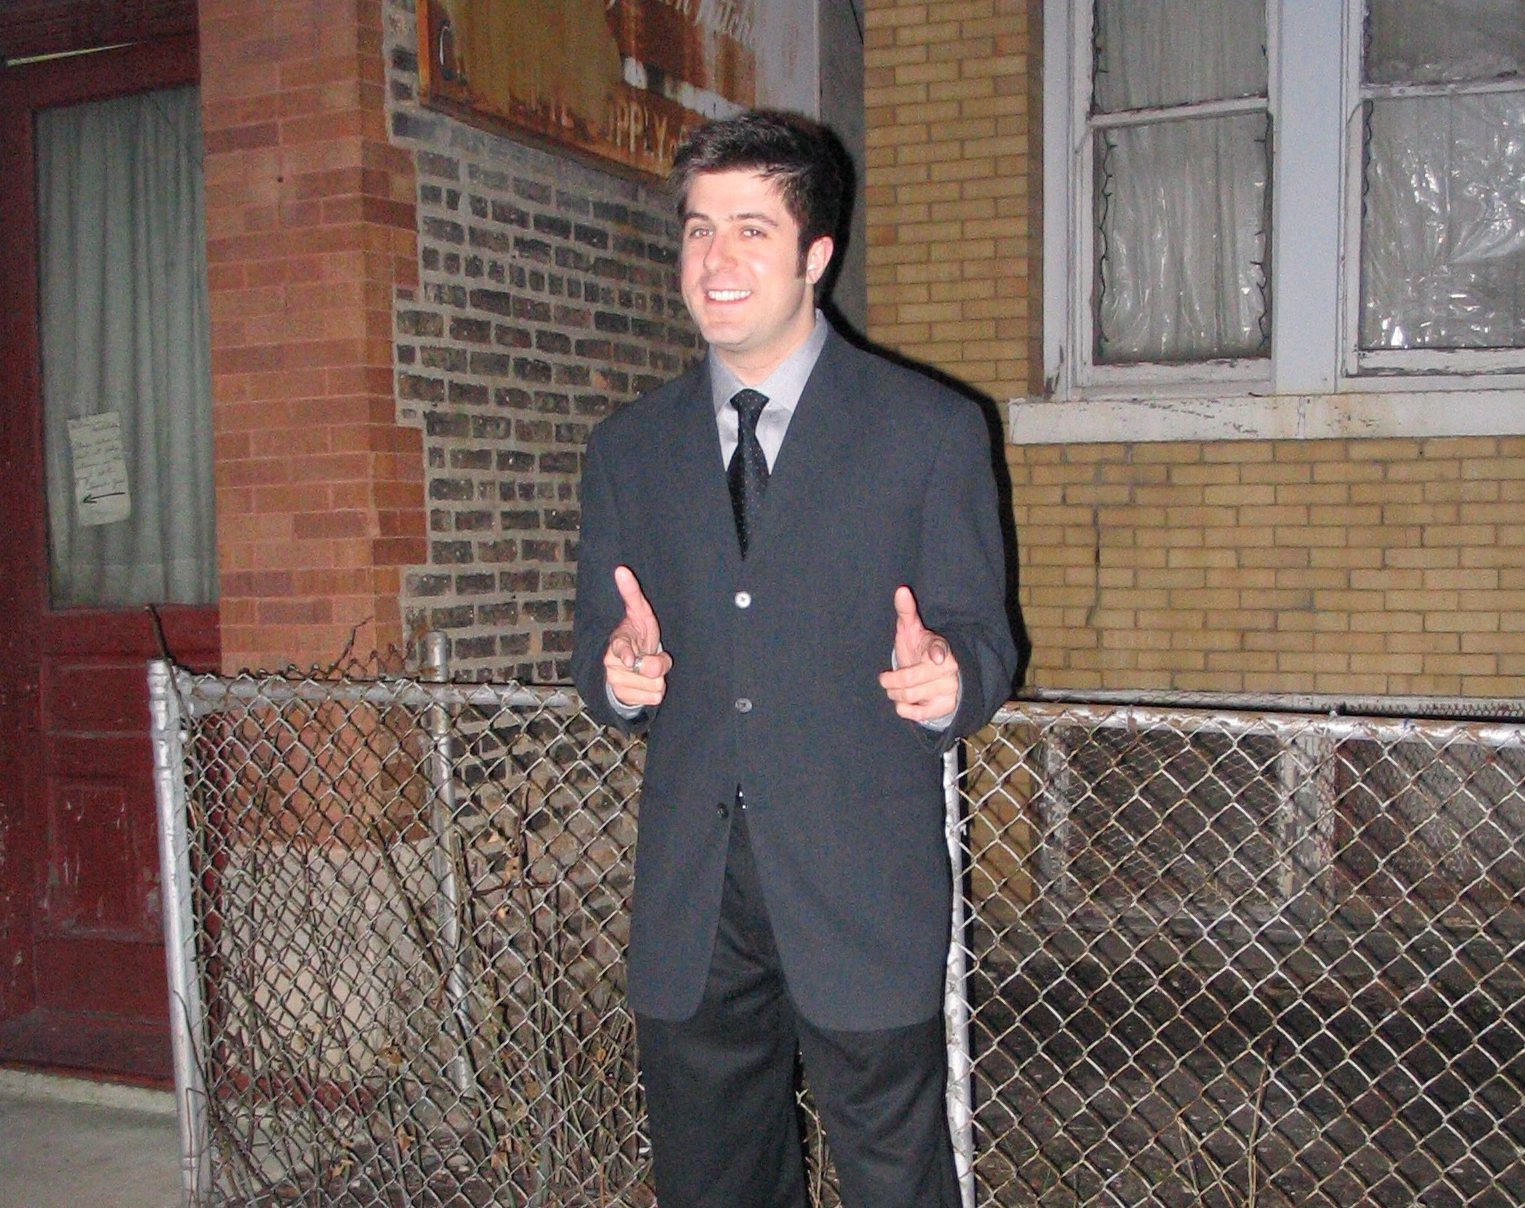 OTL host Mike Stephen shows off one of his many radio show work suits before the snowstorm hits.